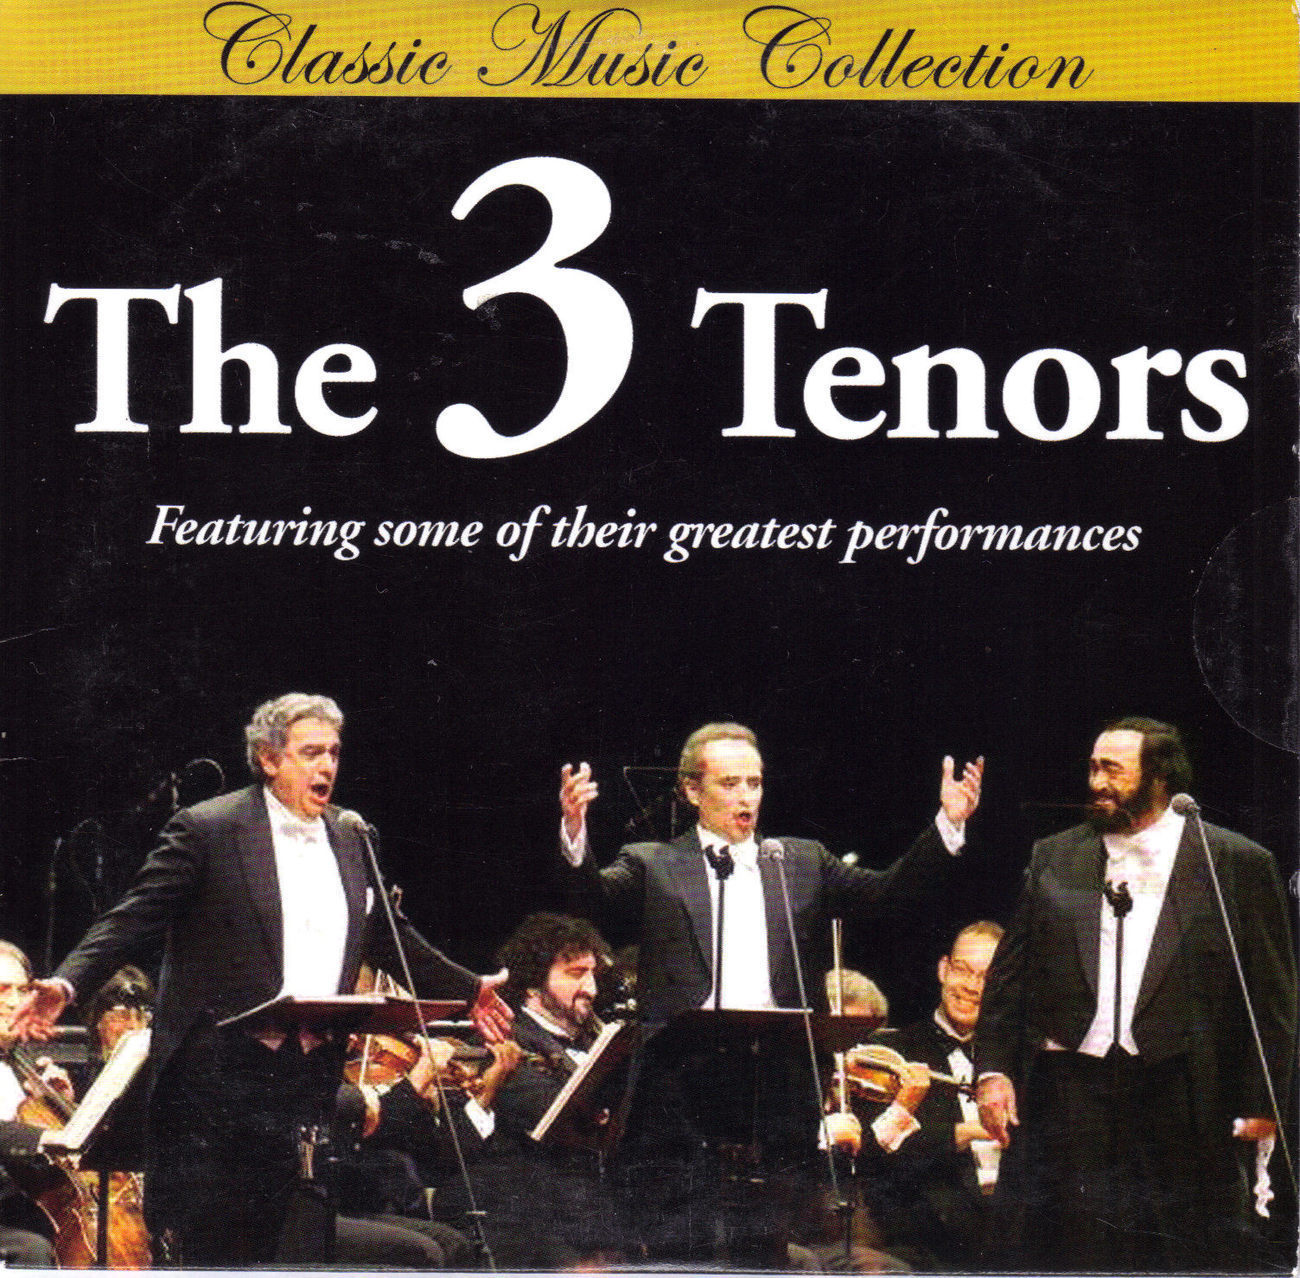 THE 3 TENORS Classic Music Collection CD